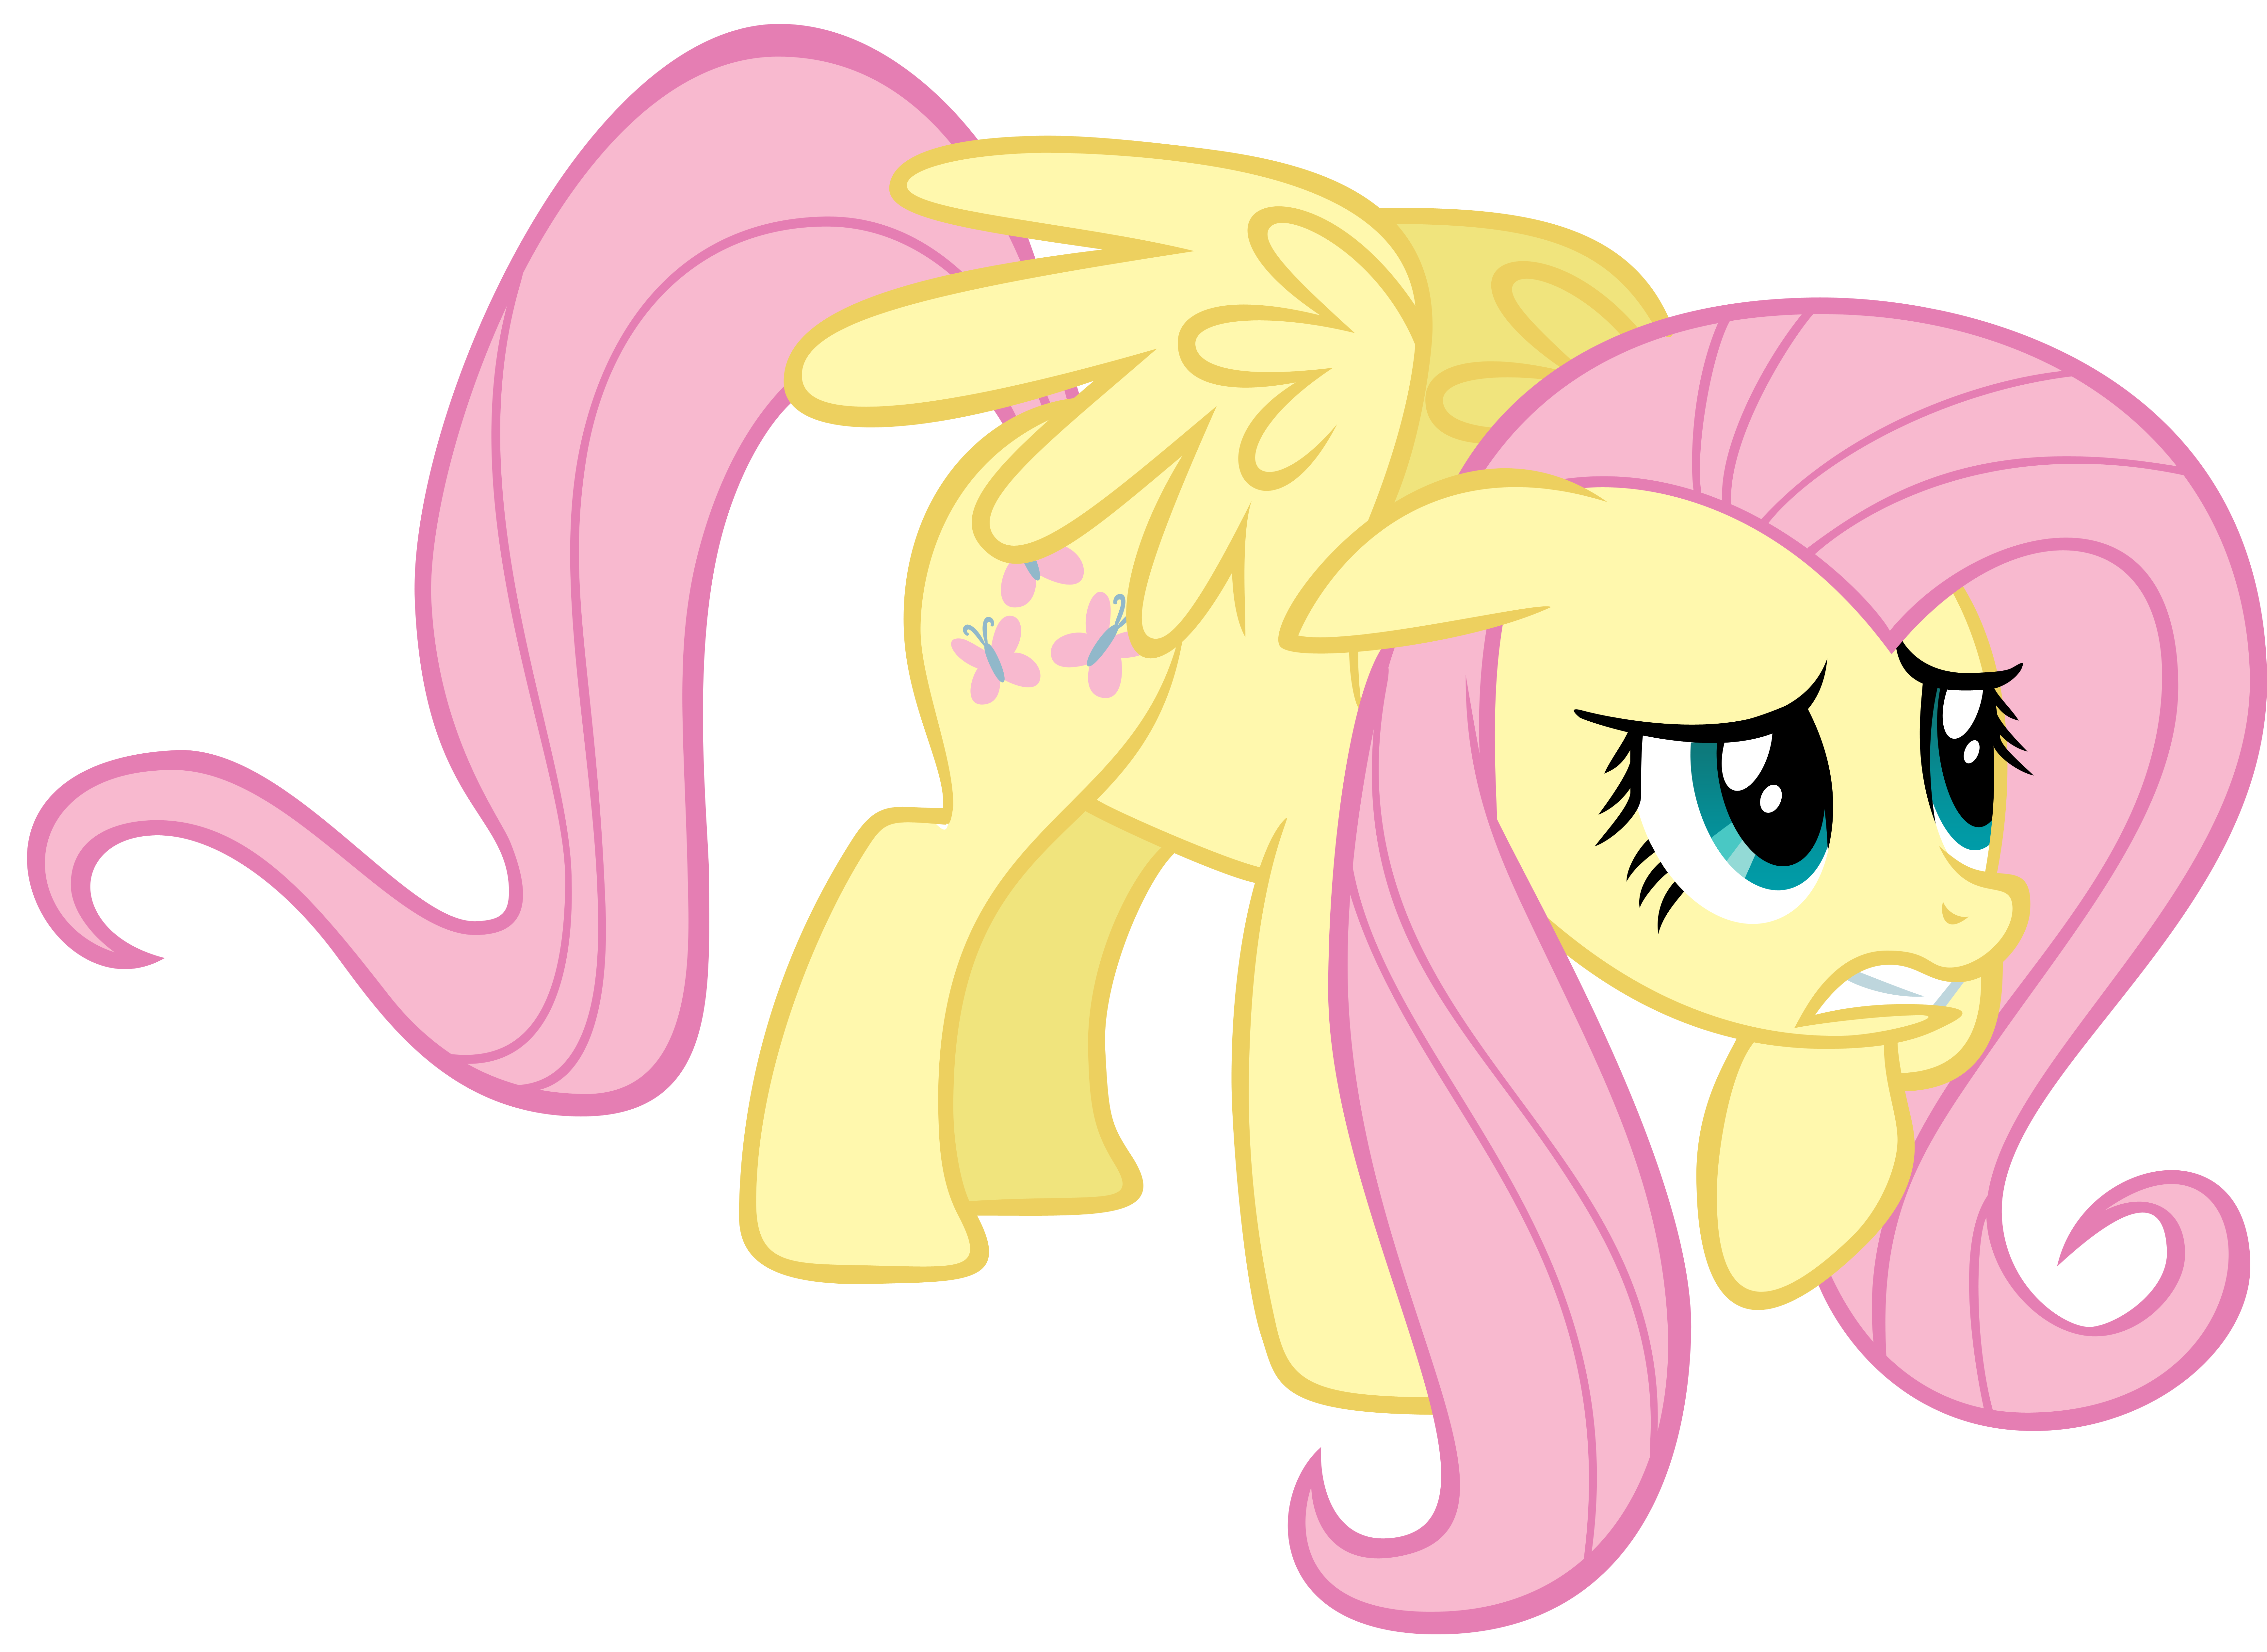 Scared Fluttershy by CrusierPL on DeviantArt